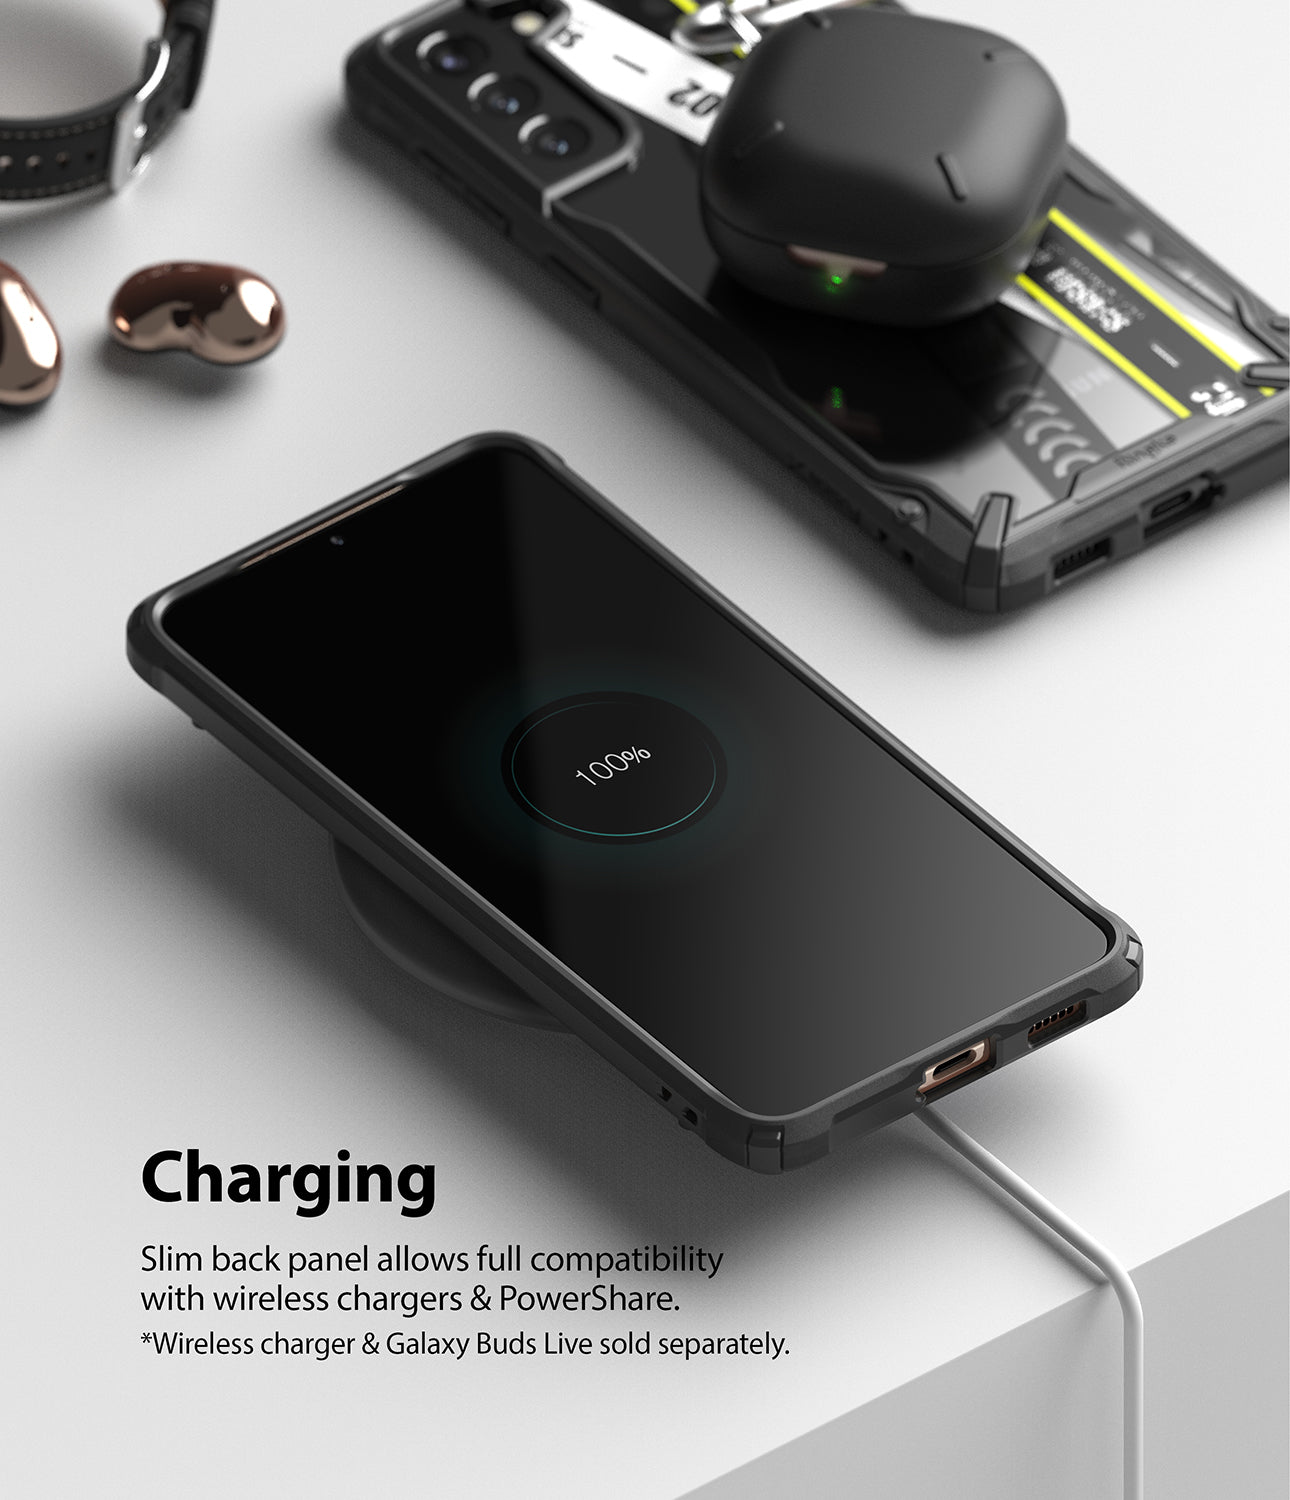 wireless charging and powershare compatible